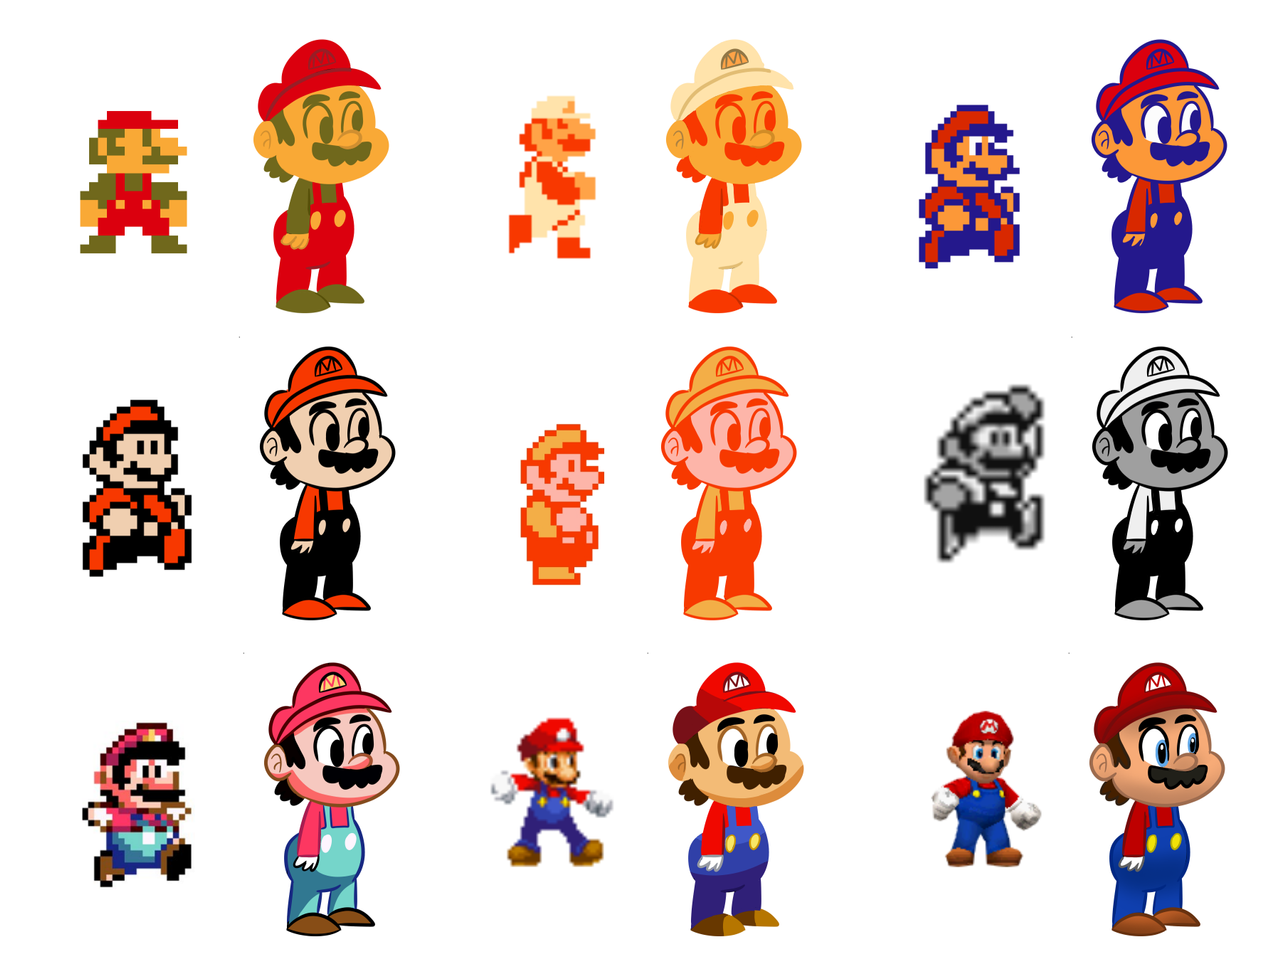 Gameboy color palettes - Super Mario Palettes By Emjaidi Super Mario Palettes By Emjaidi